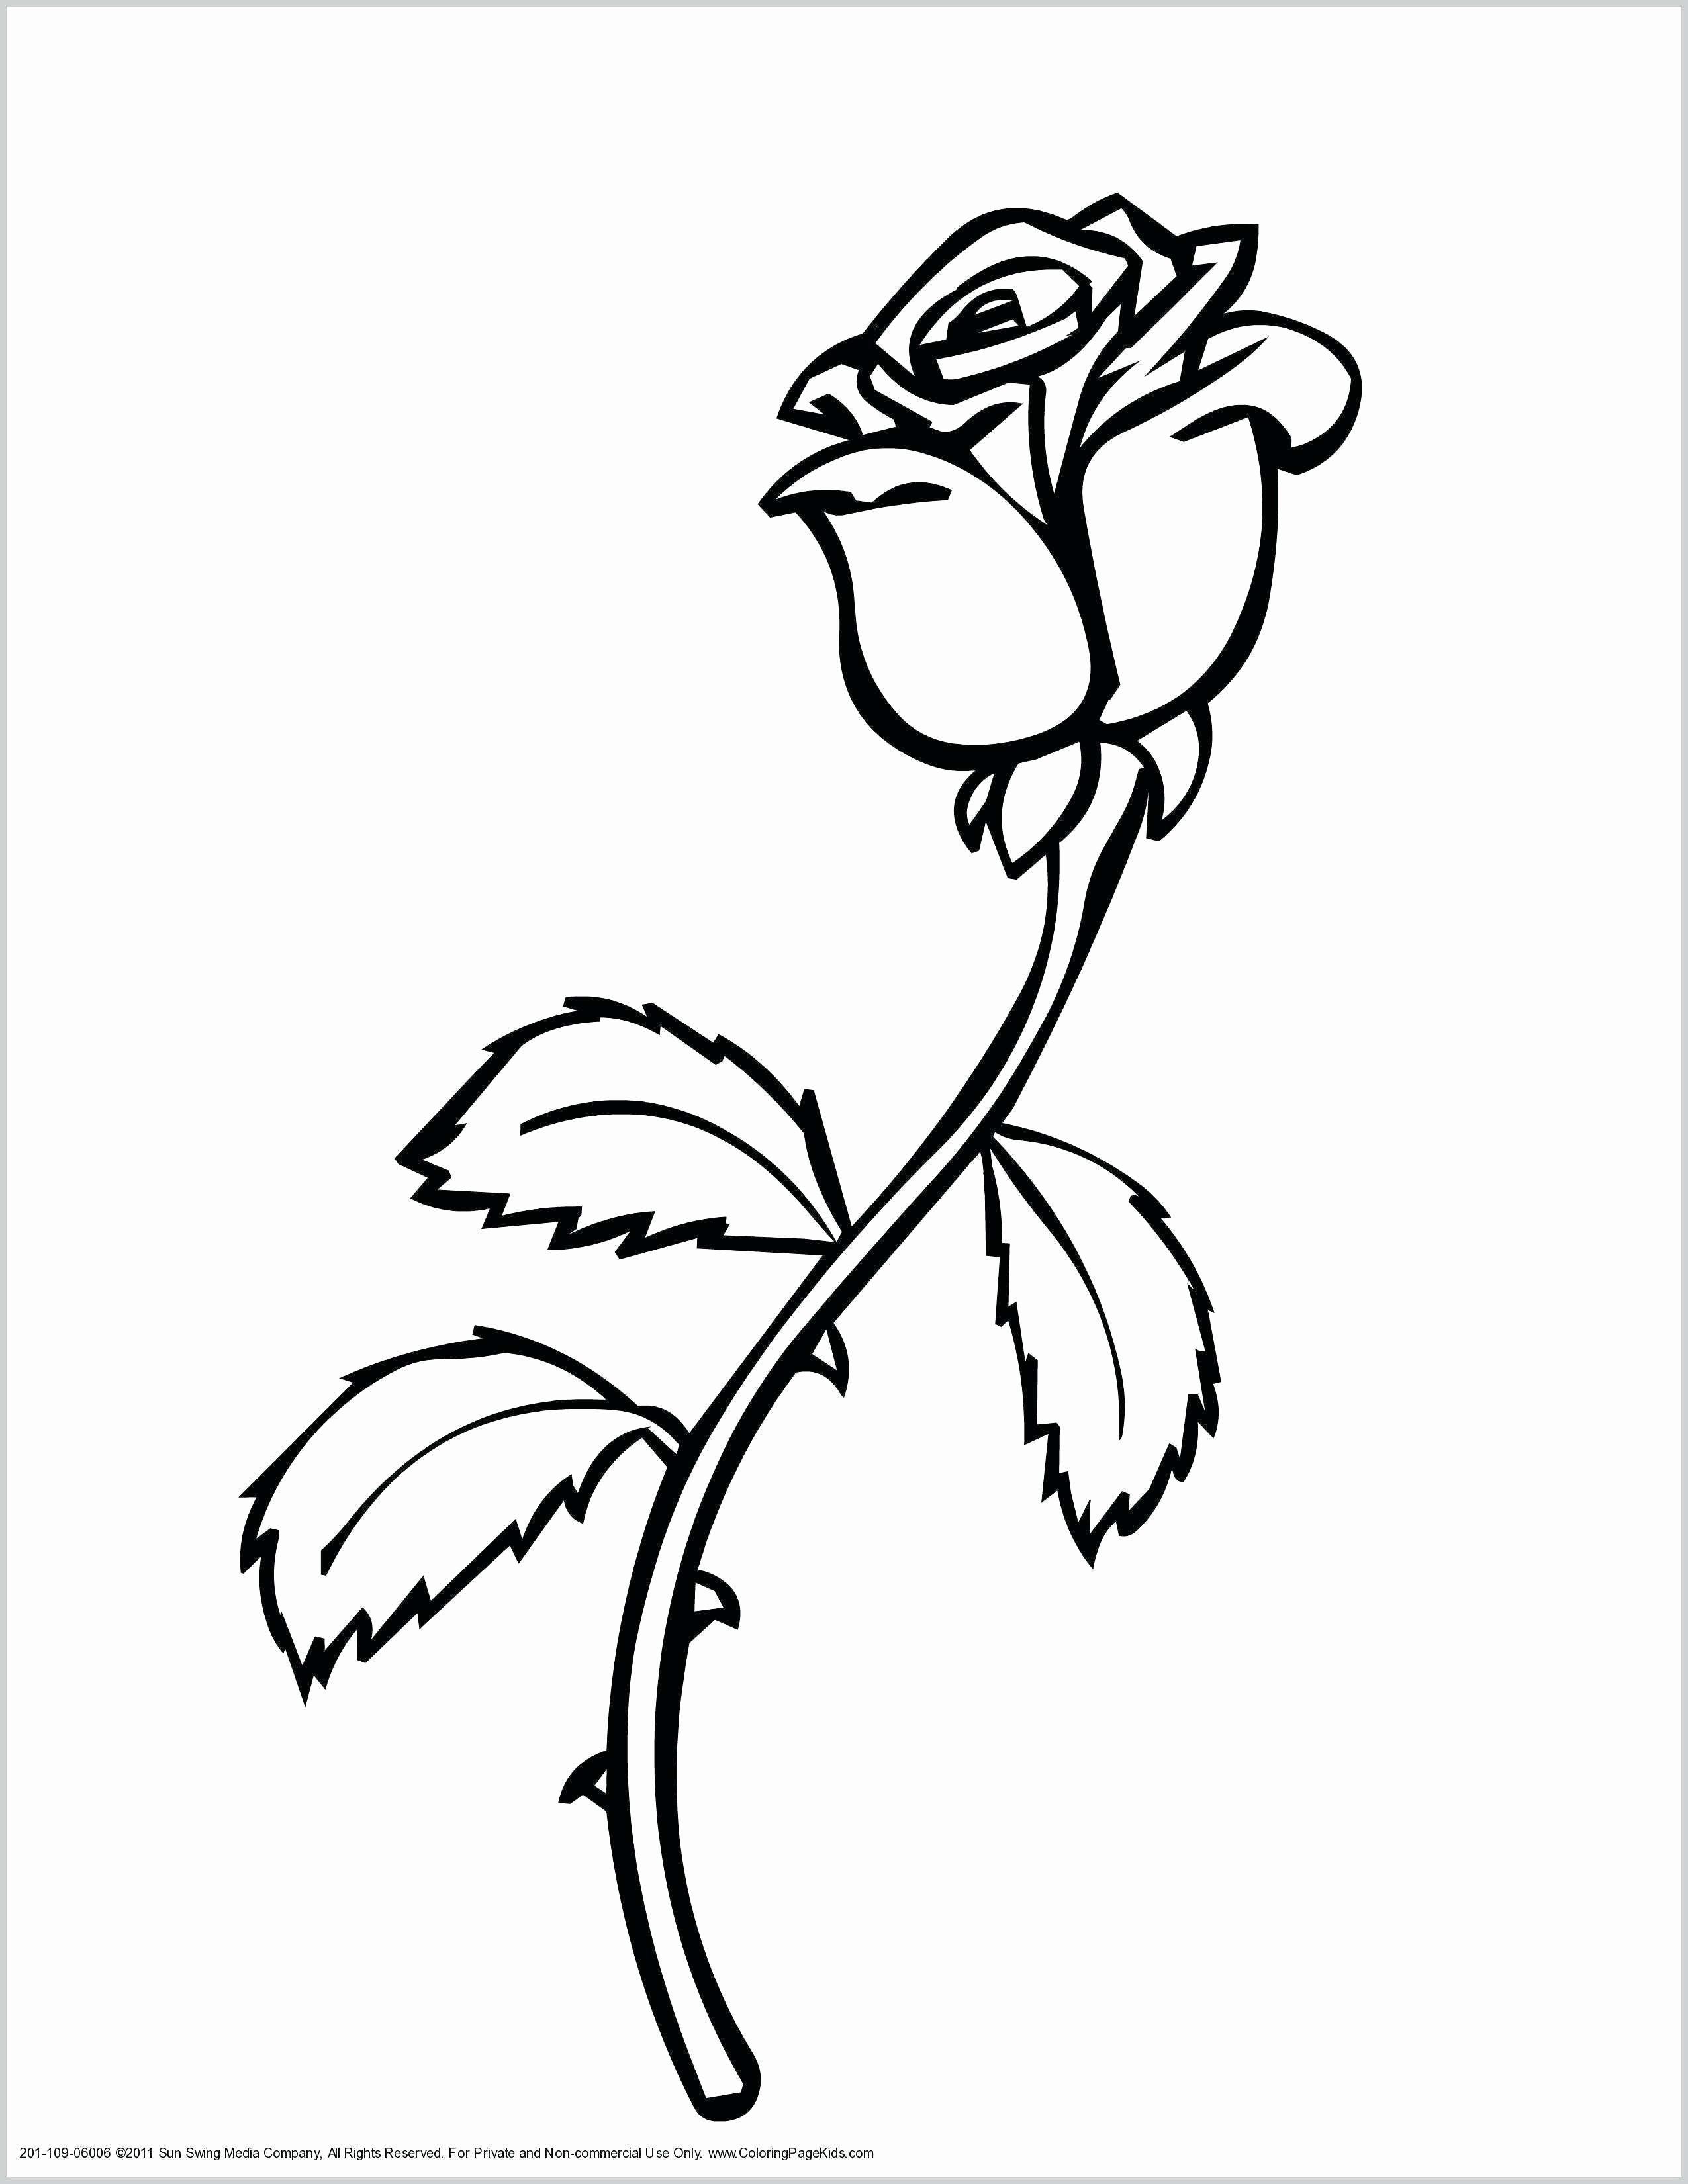 Butterfly With Flowers Coloring Pages Inspirational Daisy Flower Coloring Pages Printable Amaz Rose Coloring Pages Flower Coloring Sheets Flower Coloring Pages